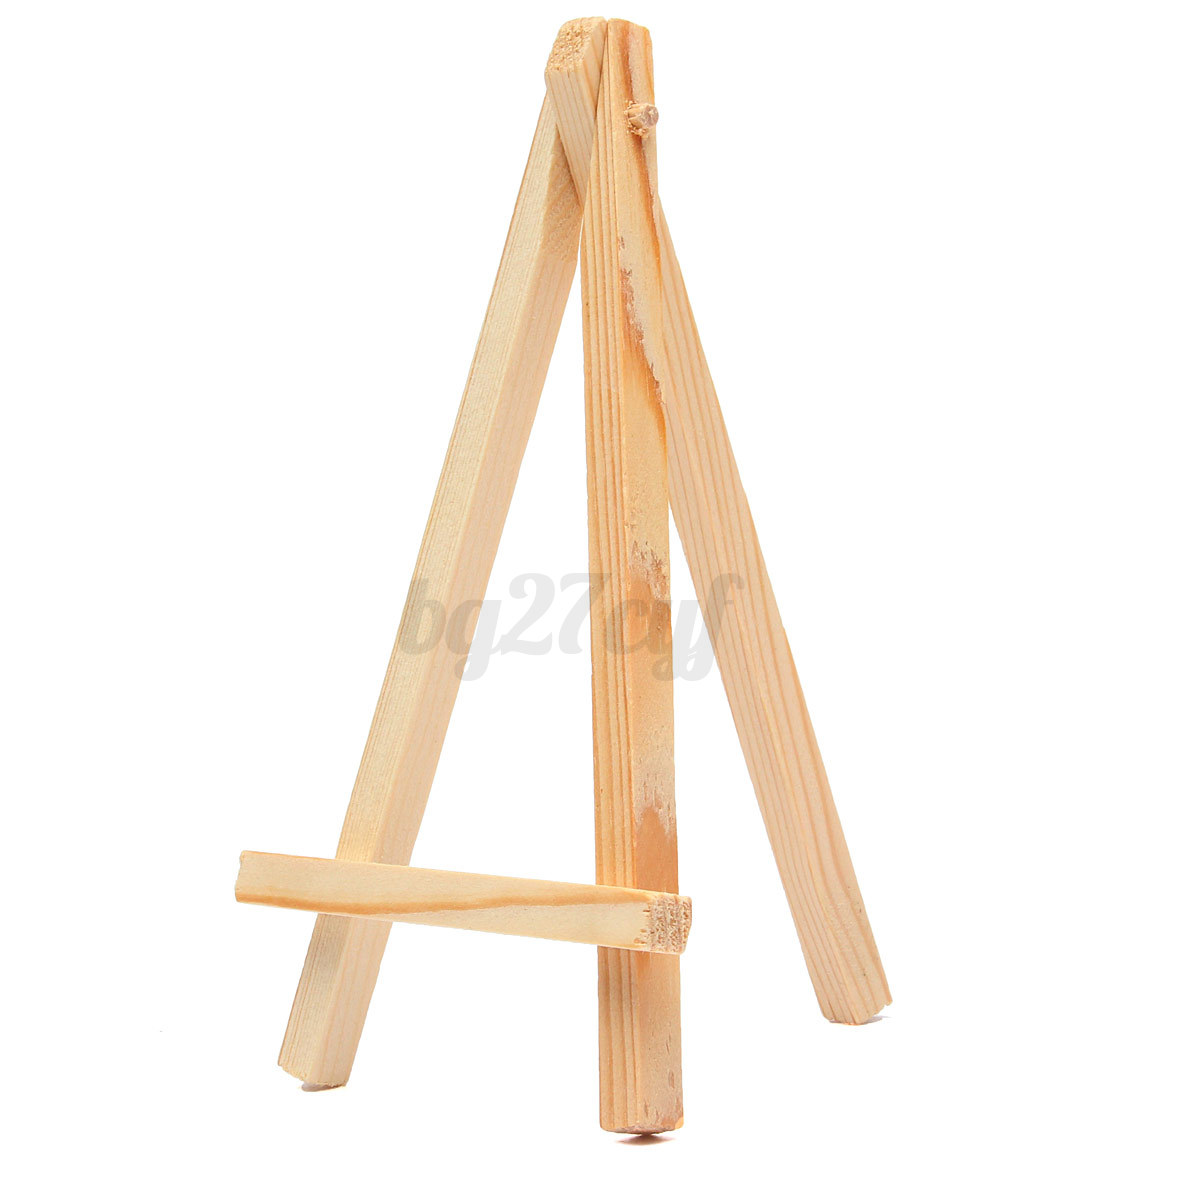 Very Impressive portraiture of  Wood Easel Wedding Meeting Table Number Name Card Stand Display Hold with #A56826 color and 1200x1200 pixels